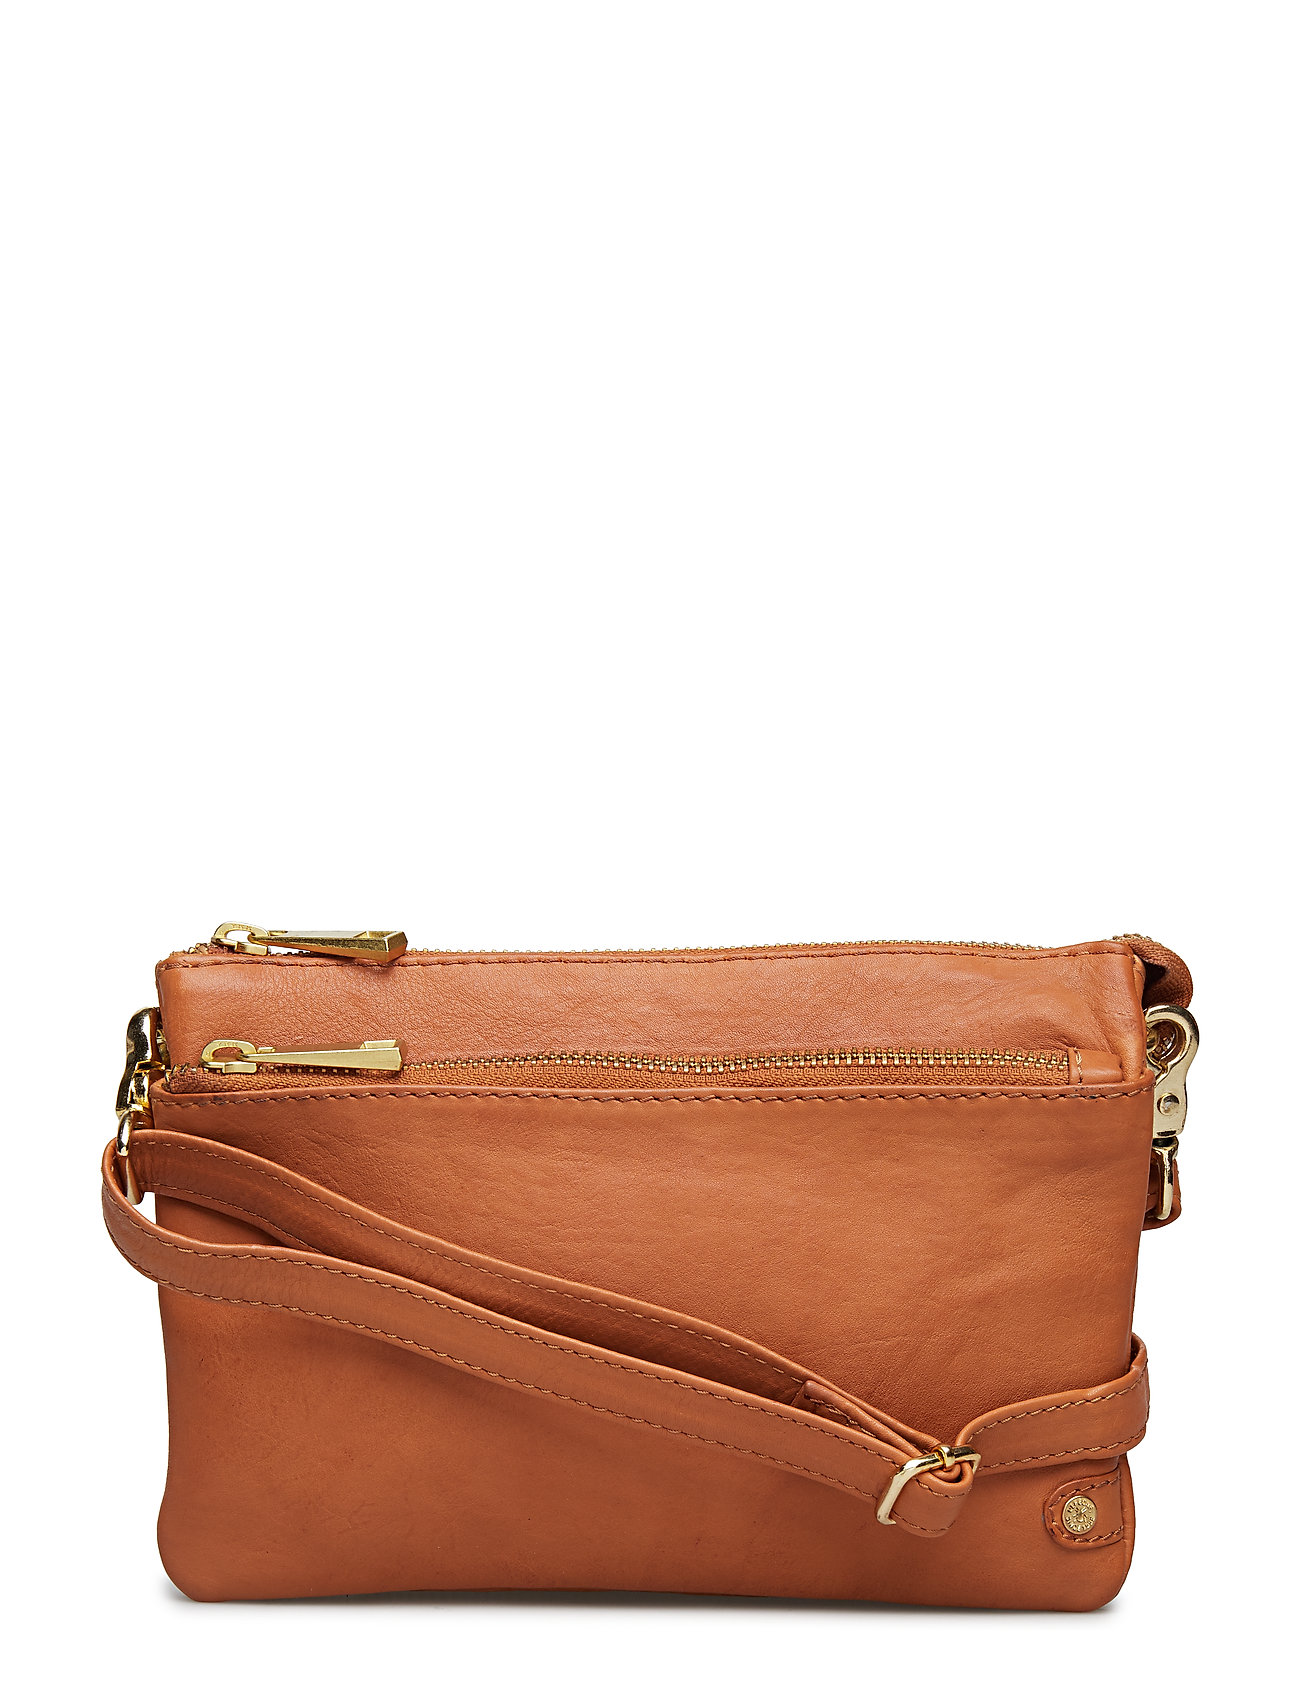 Image of Small Bag / Clutch (3115787095)